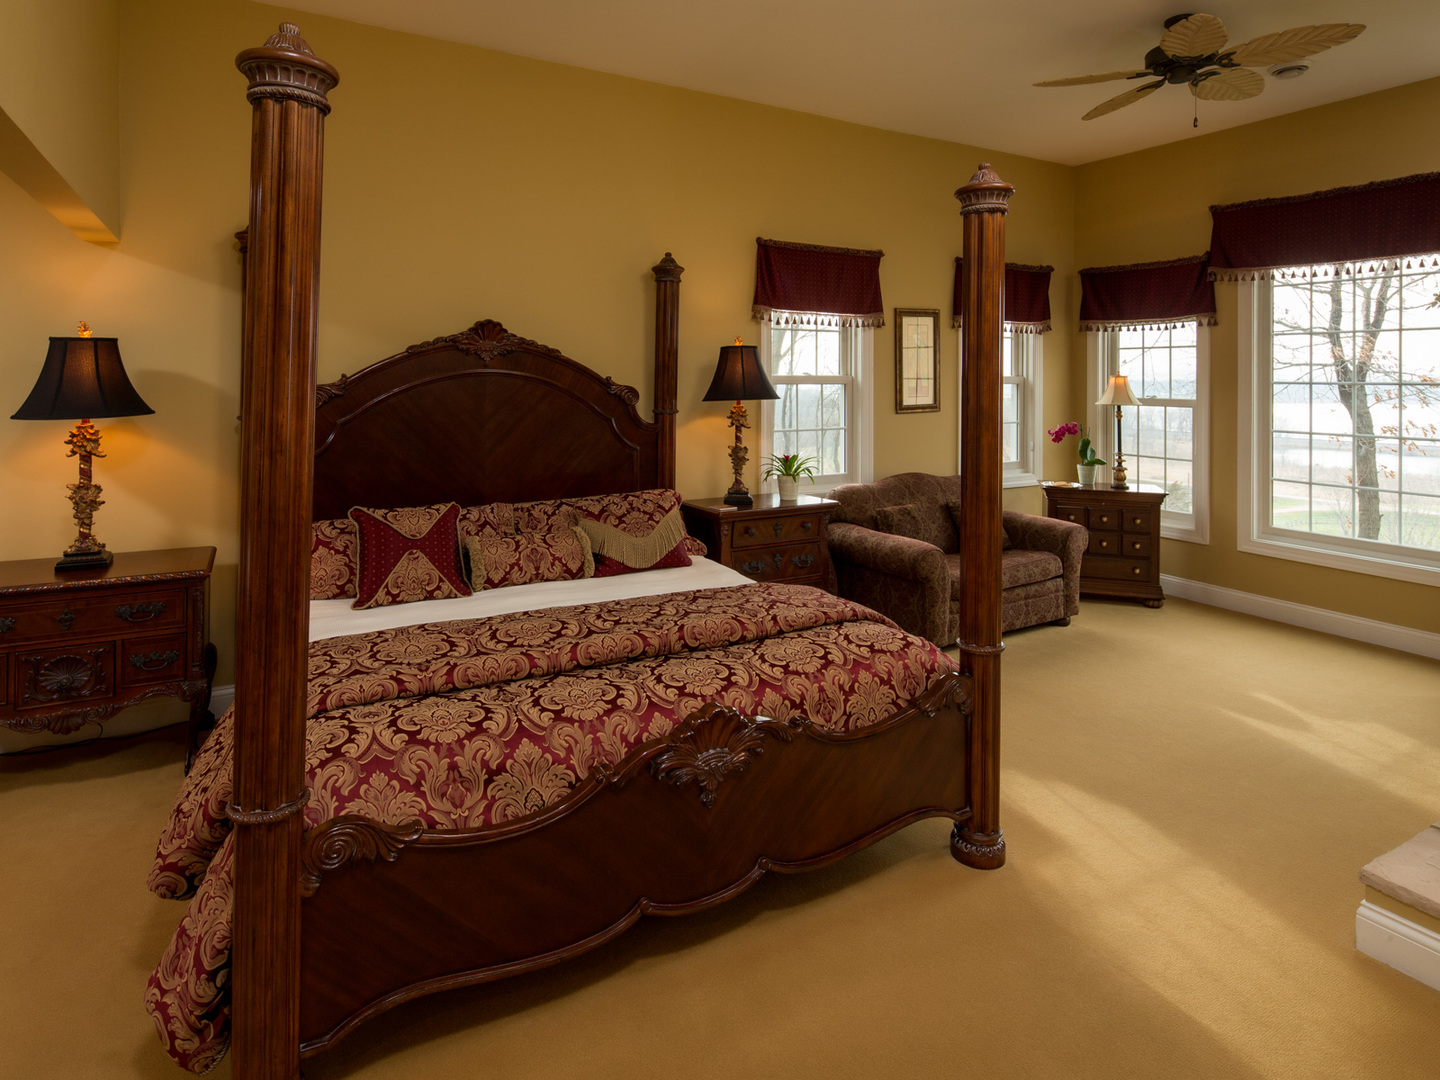 A bedroom with a large bed in a hotel room at Goldmoor Inn.